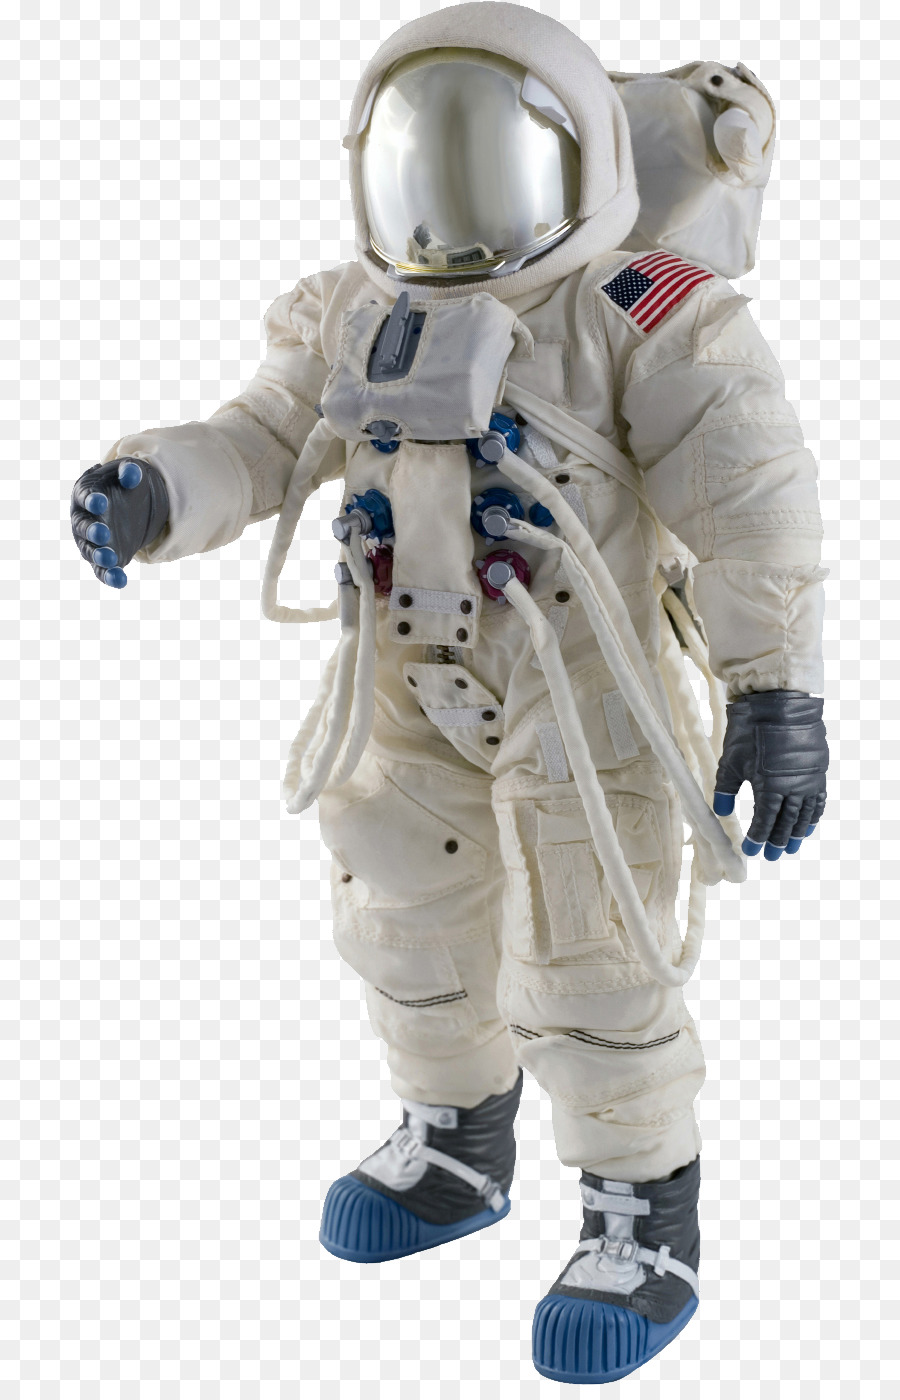 an astronaut in a space suit is motionless in outer space - photo #20